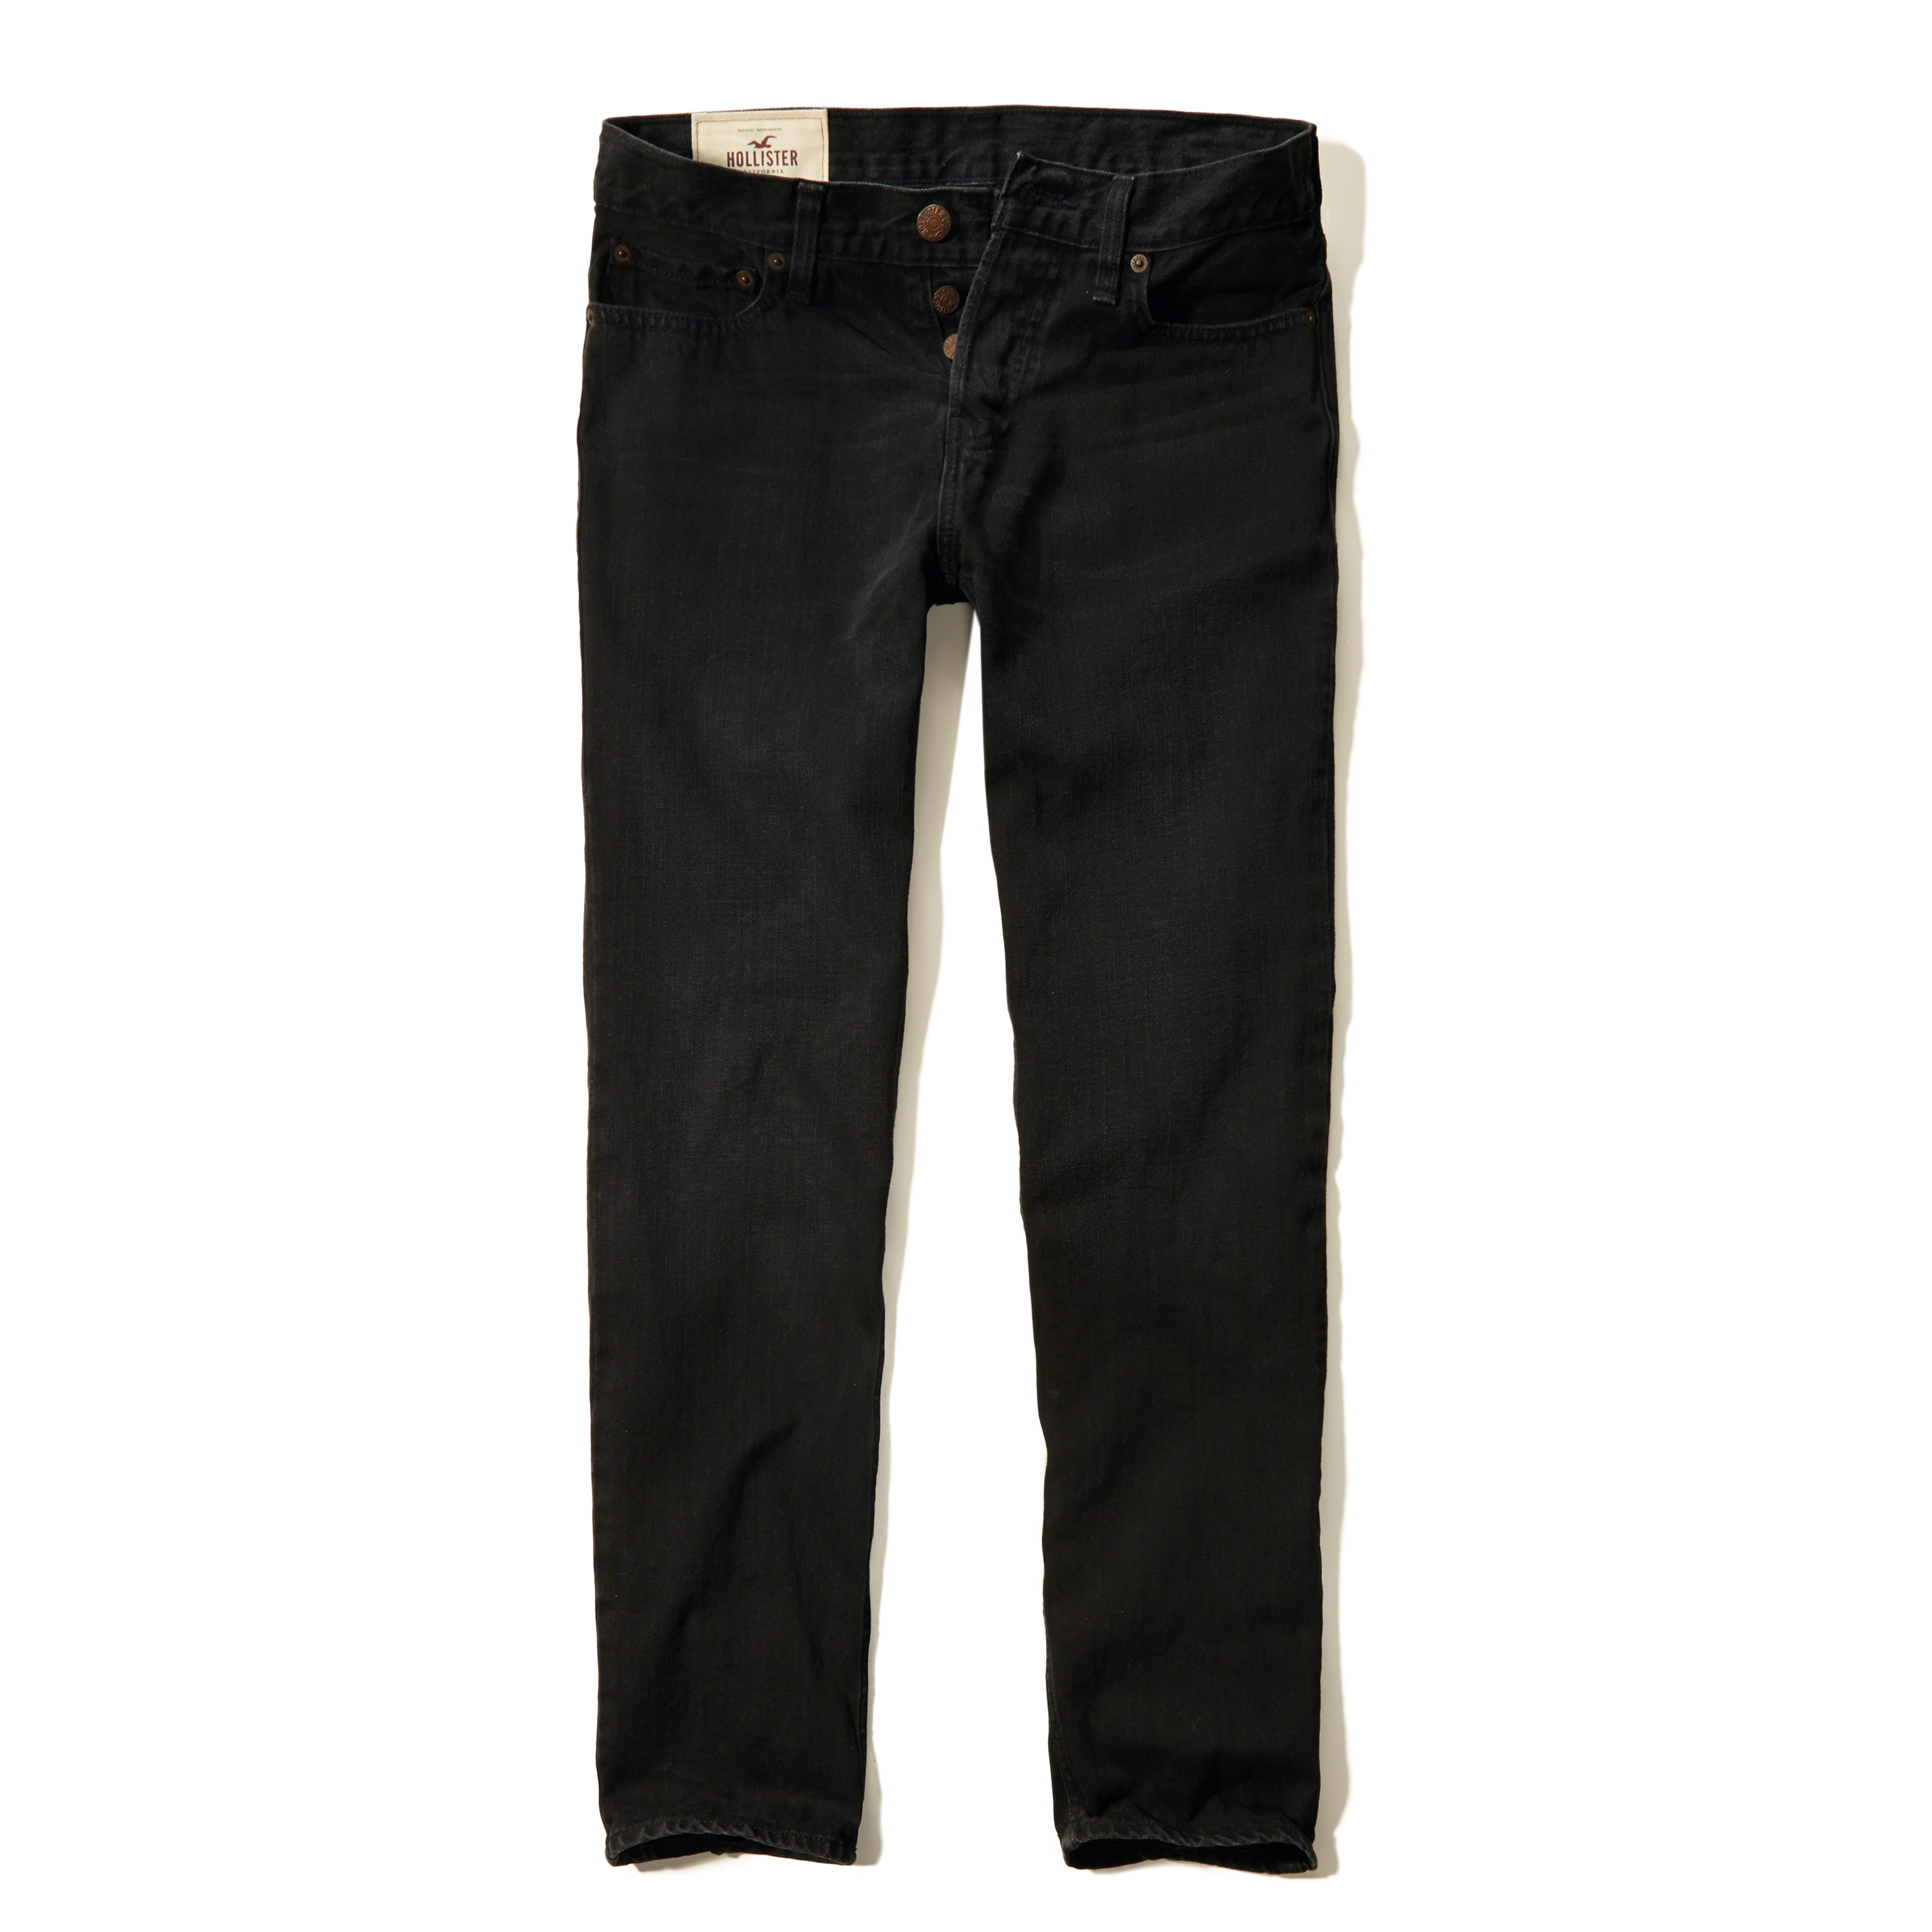 hollister dark jeans for men - photo #18